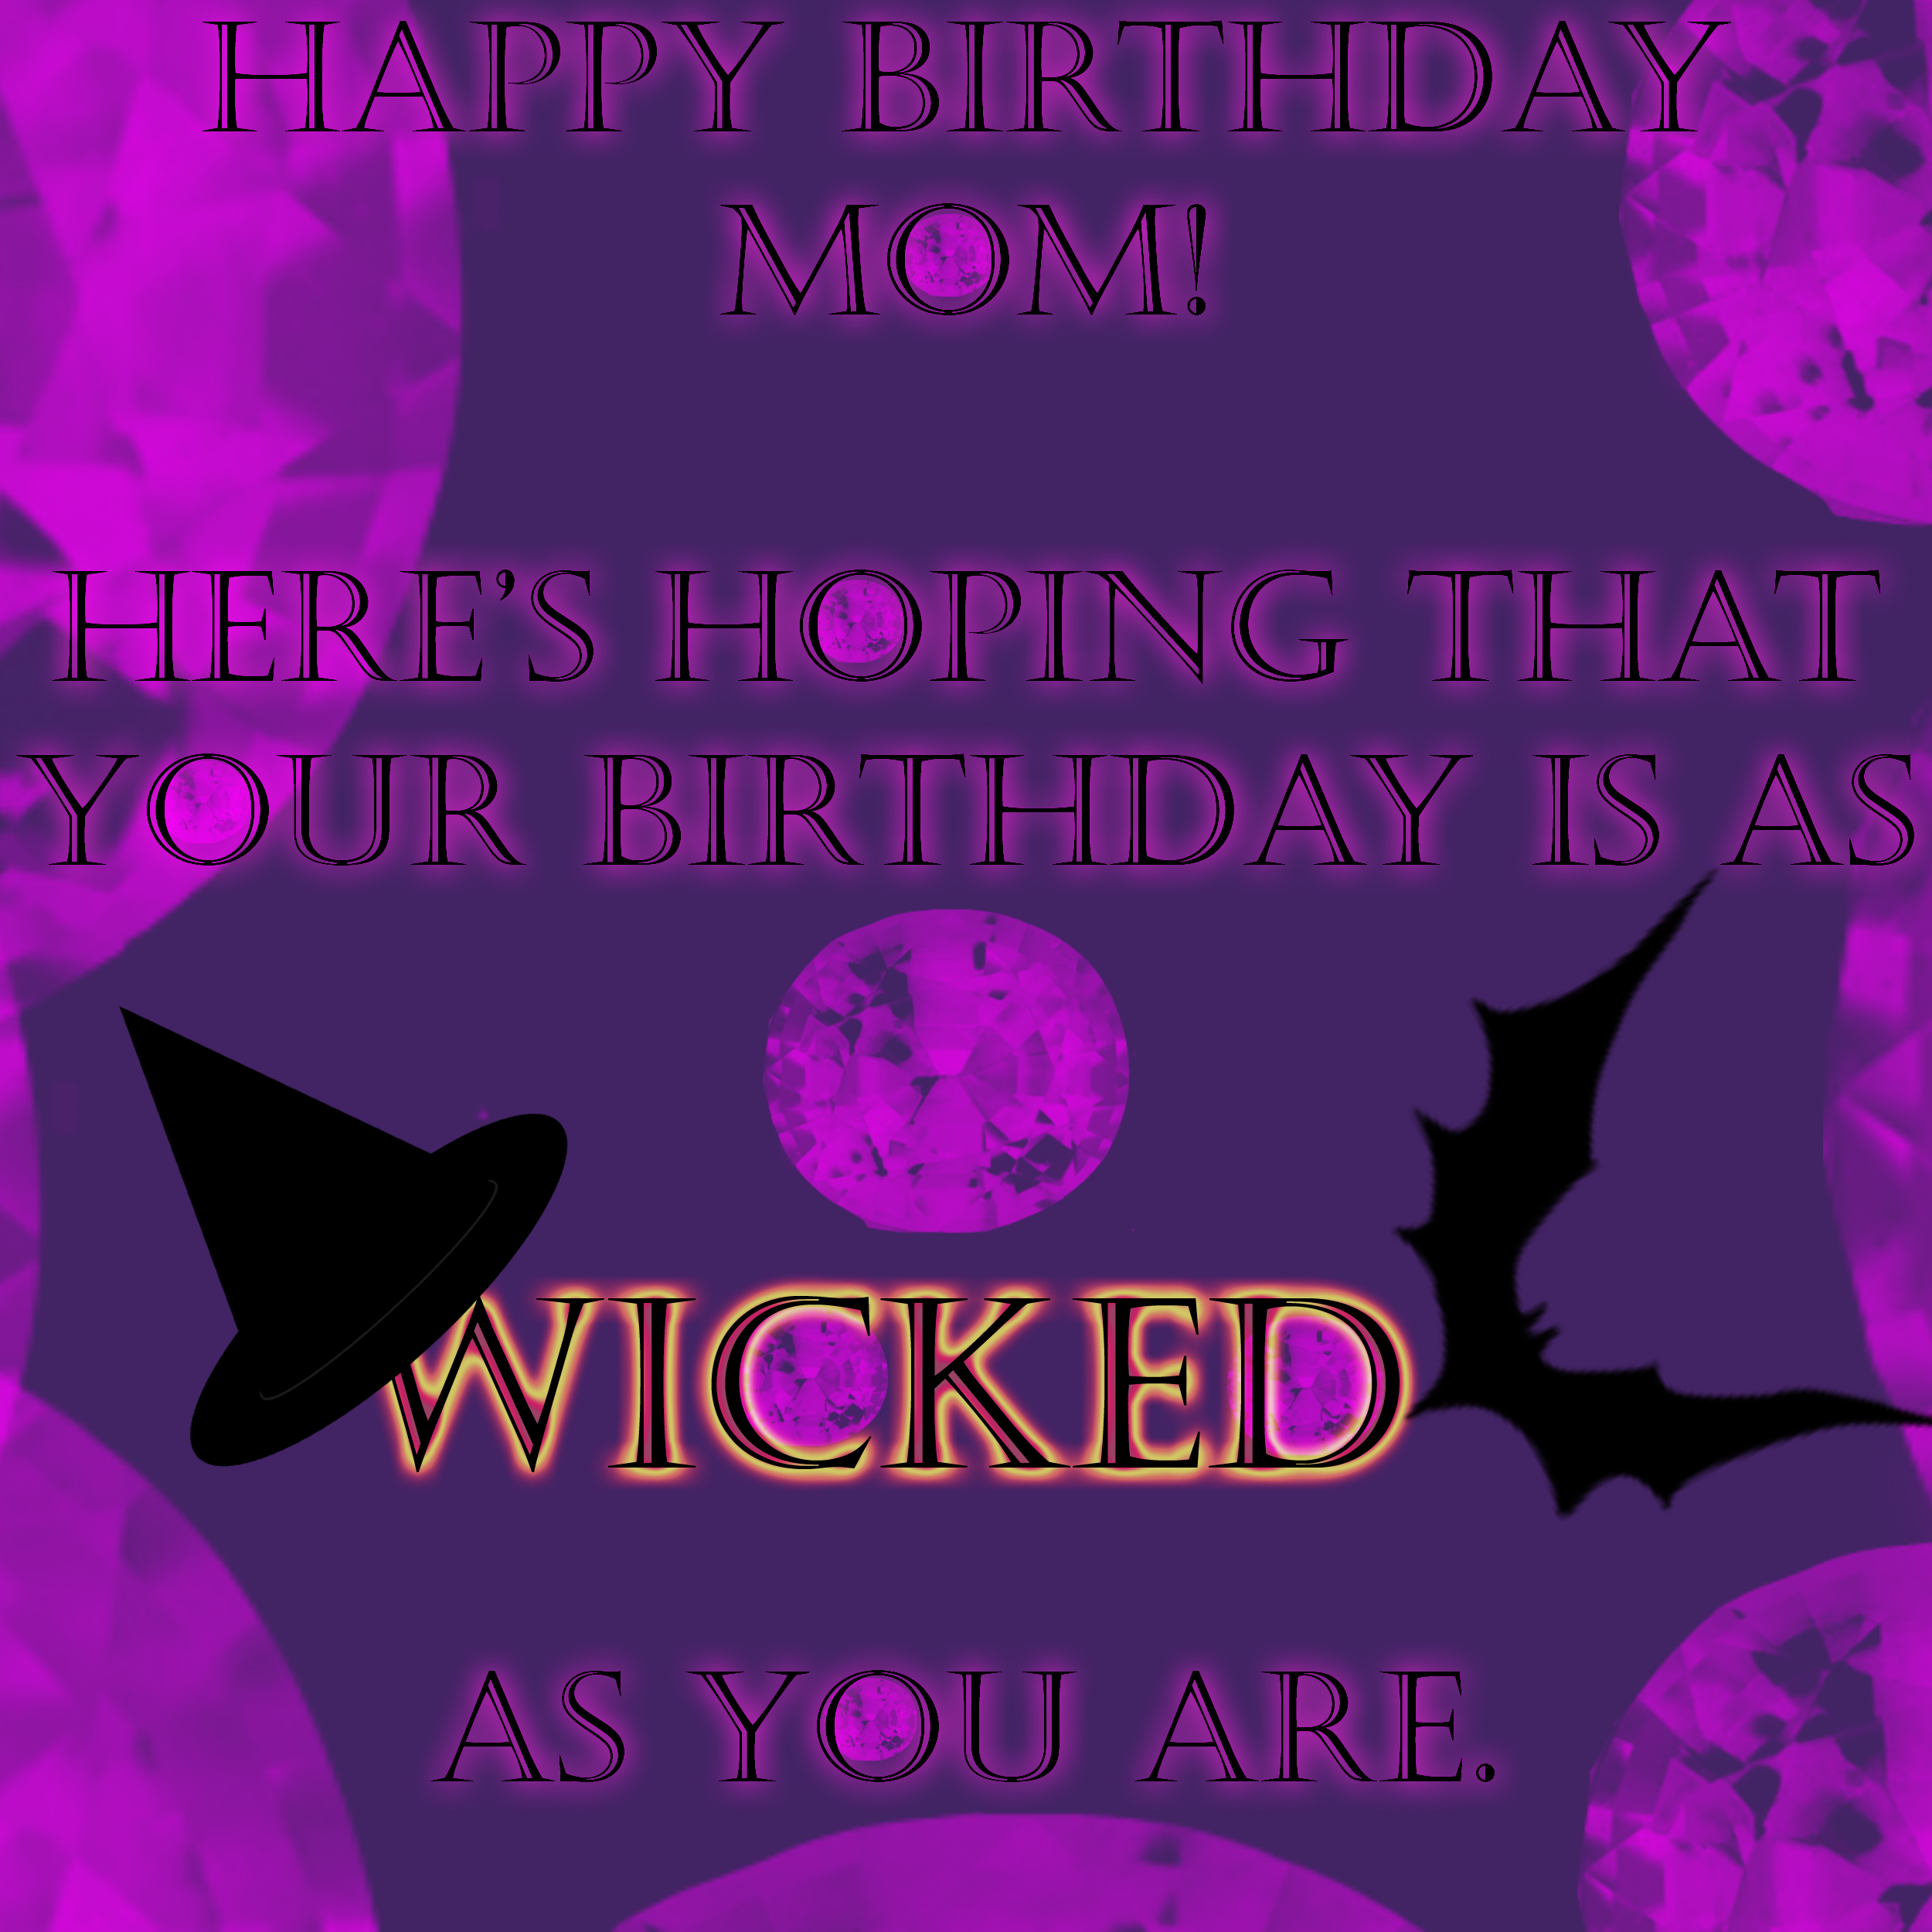 mom's birthday card by kagekaldaka on deviantart, Birthday card